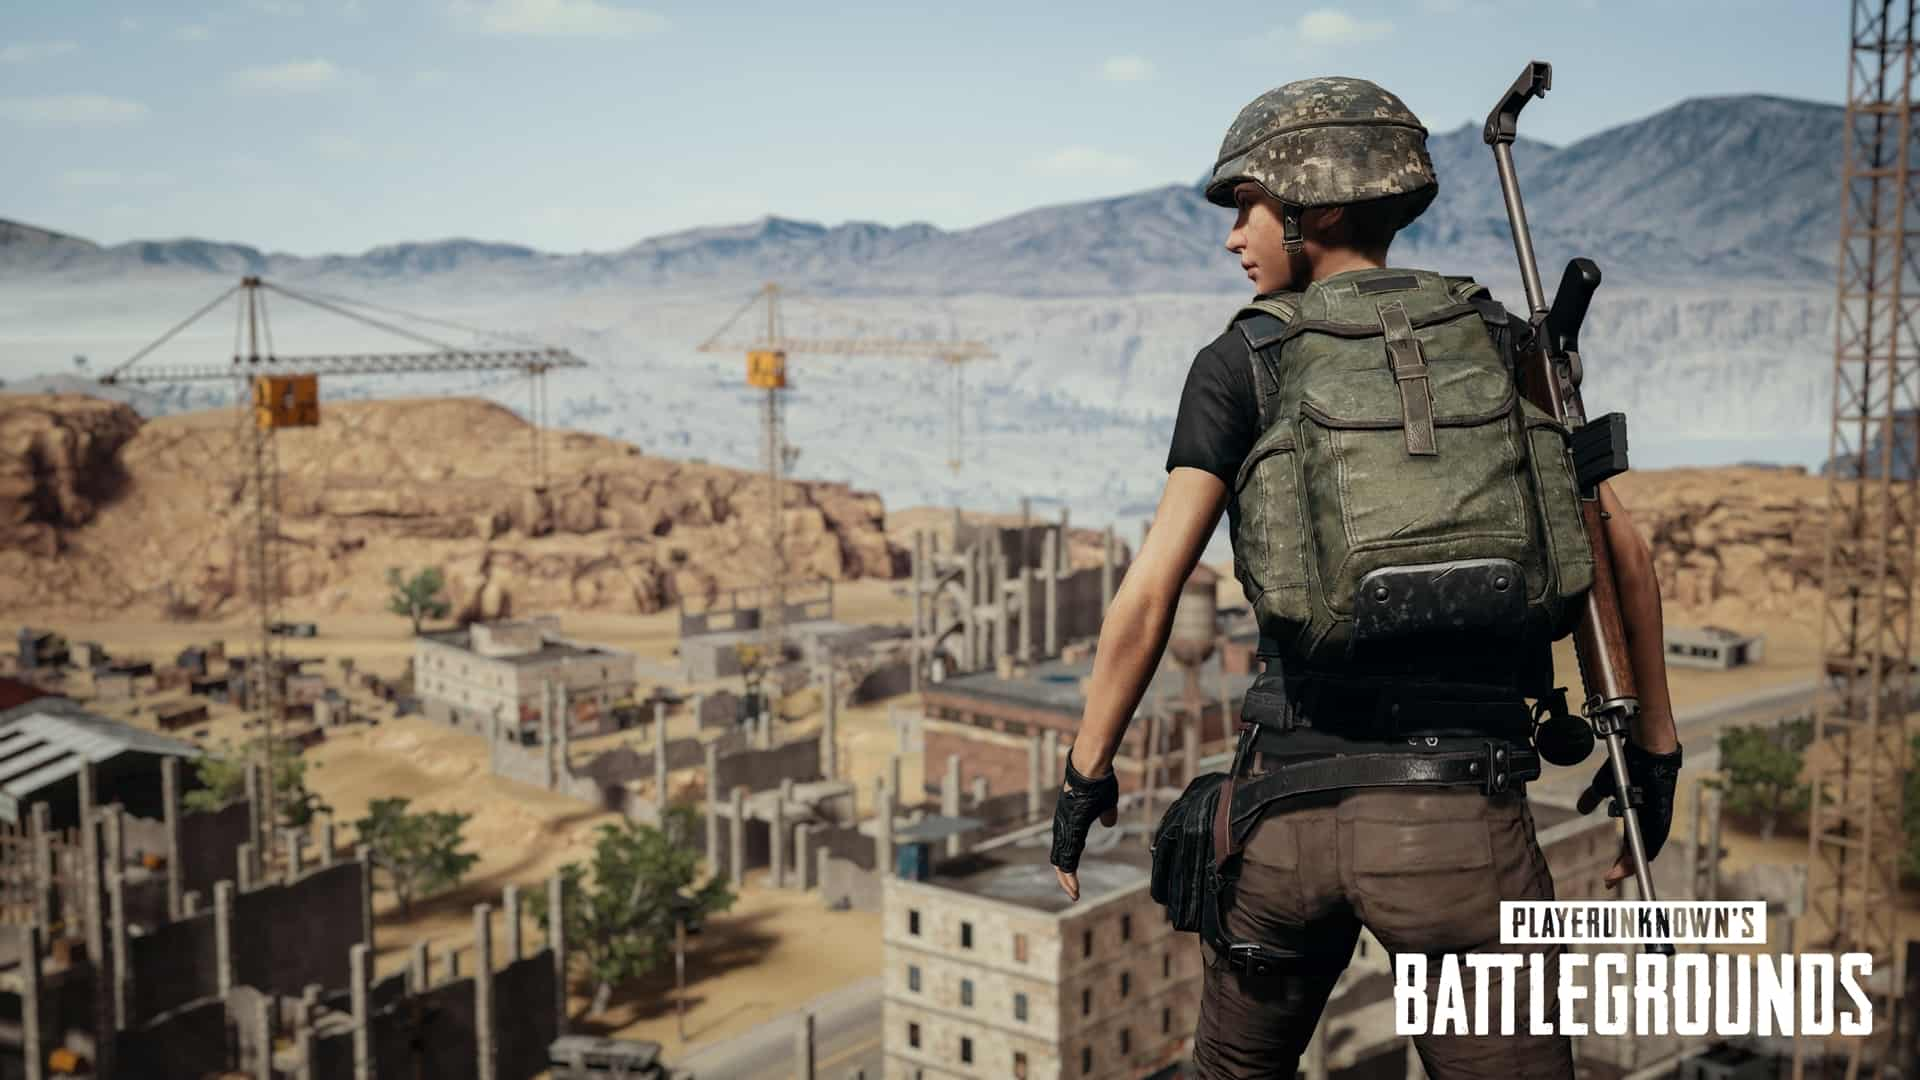 Player Unknowns Battlegrounds (PUBG) Crack PC Game Free Download